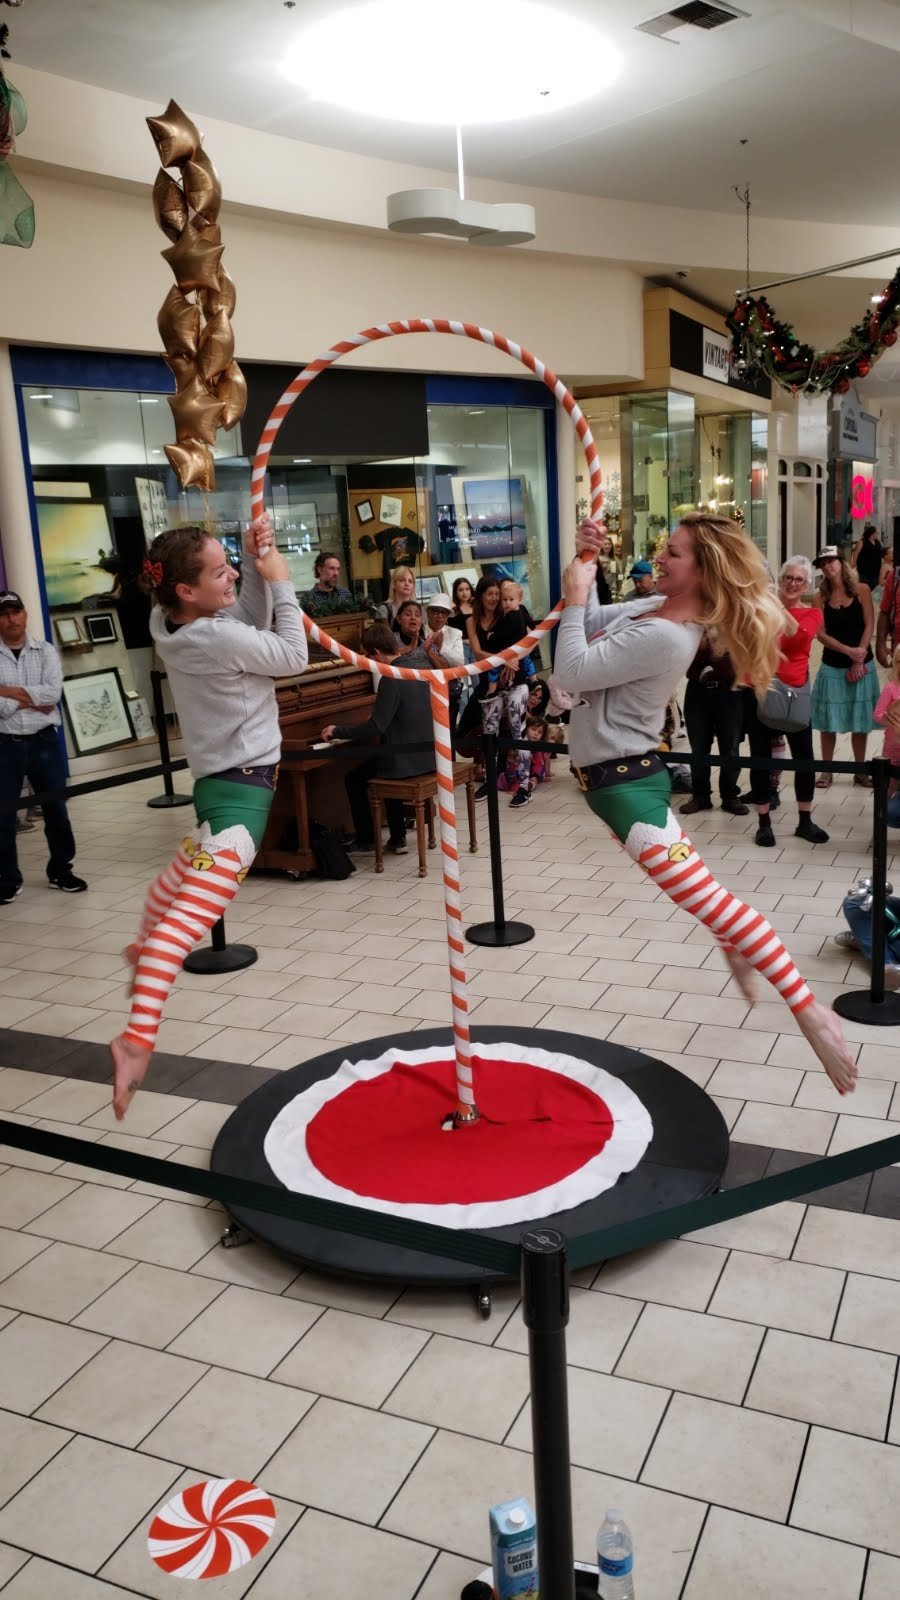 This was Stellaria Creative Company's very own mall campaign at the Capitola Mall in Capitola, CA to help promote an event for Jacob's Heart in 2019. [Accompanying video link is from the year prior, same location and event.]